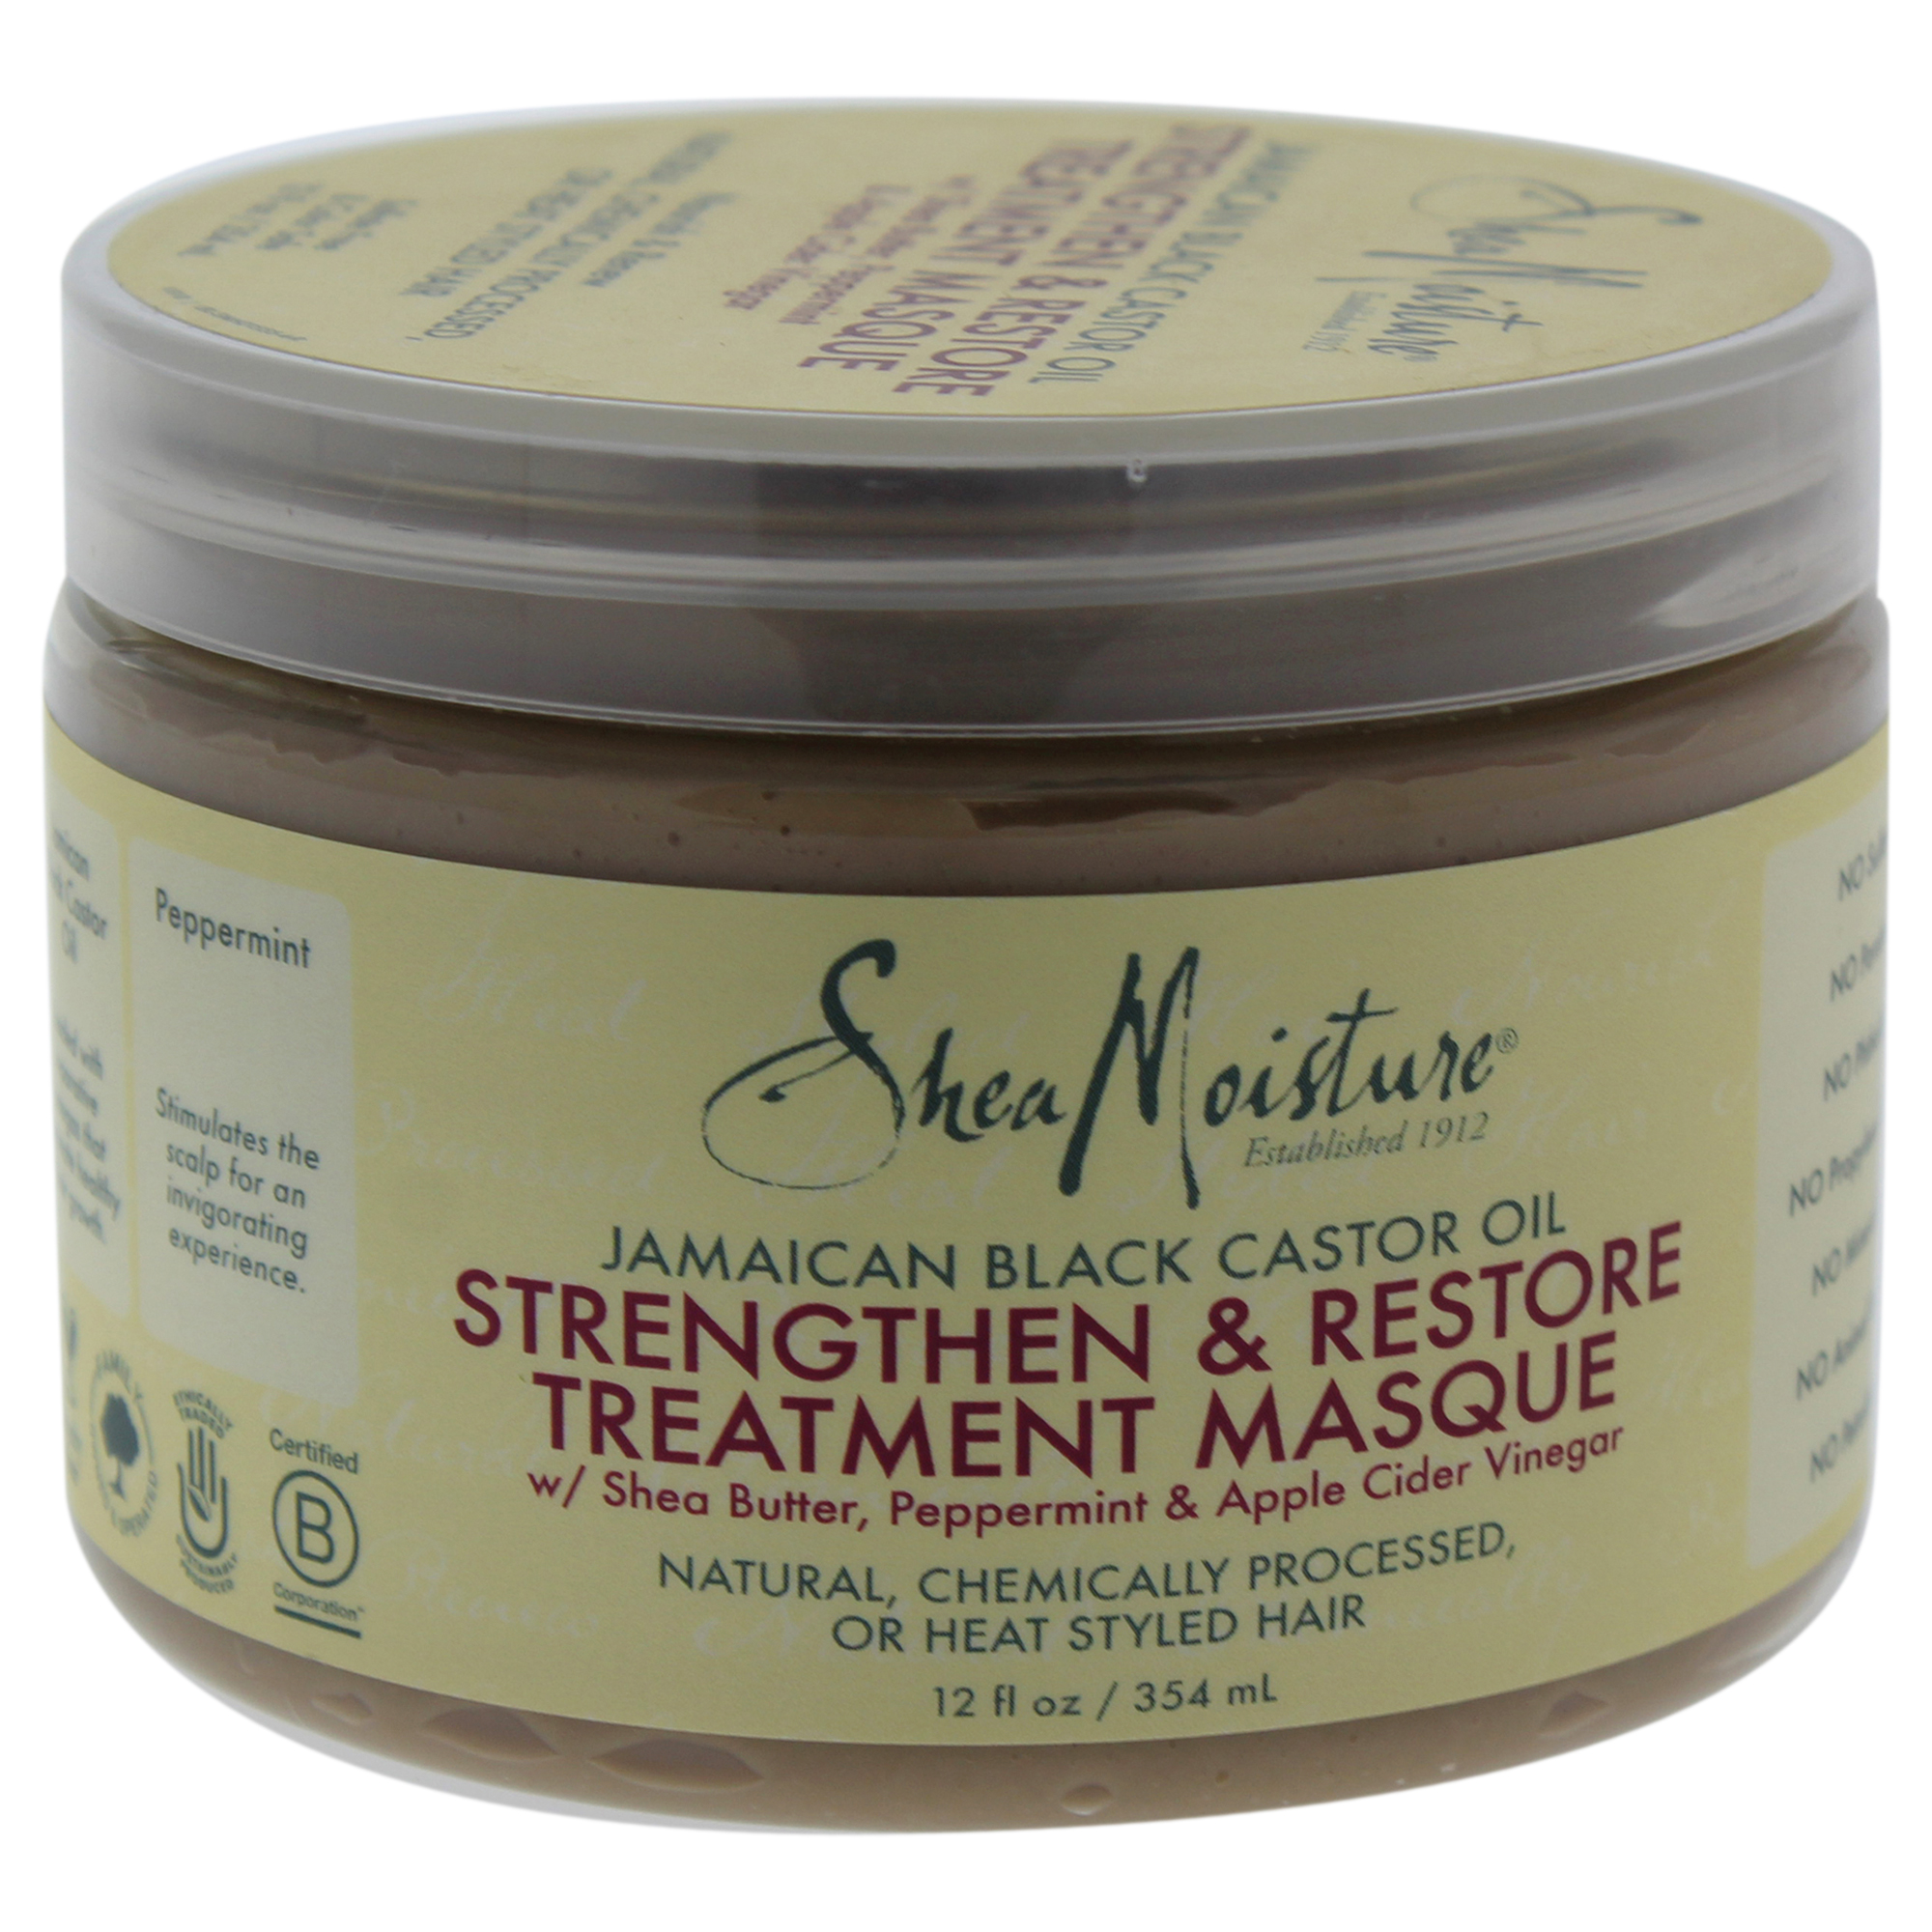 Jamaican Black Castor Oil Strengthen-Grow & Restore Treatment Masque